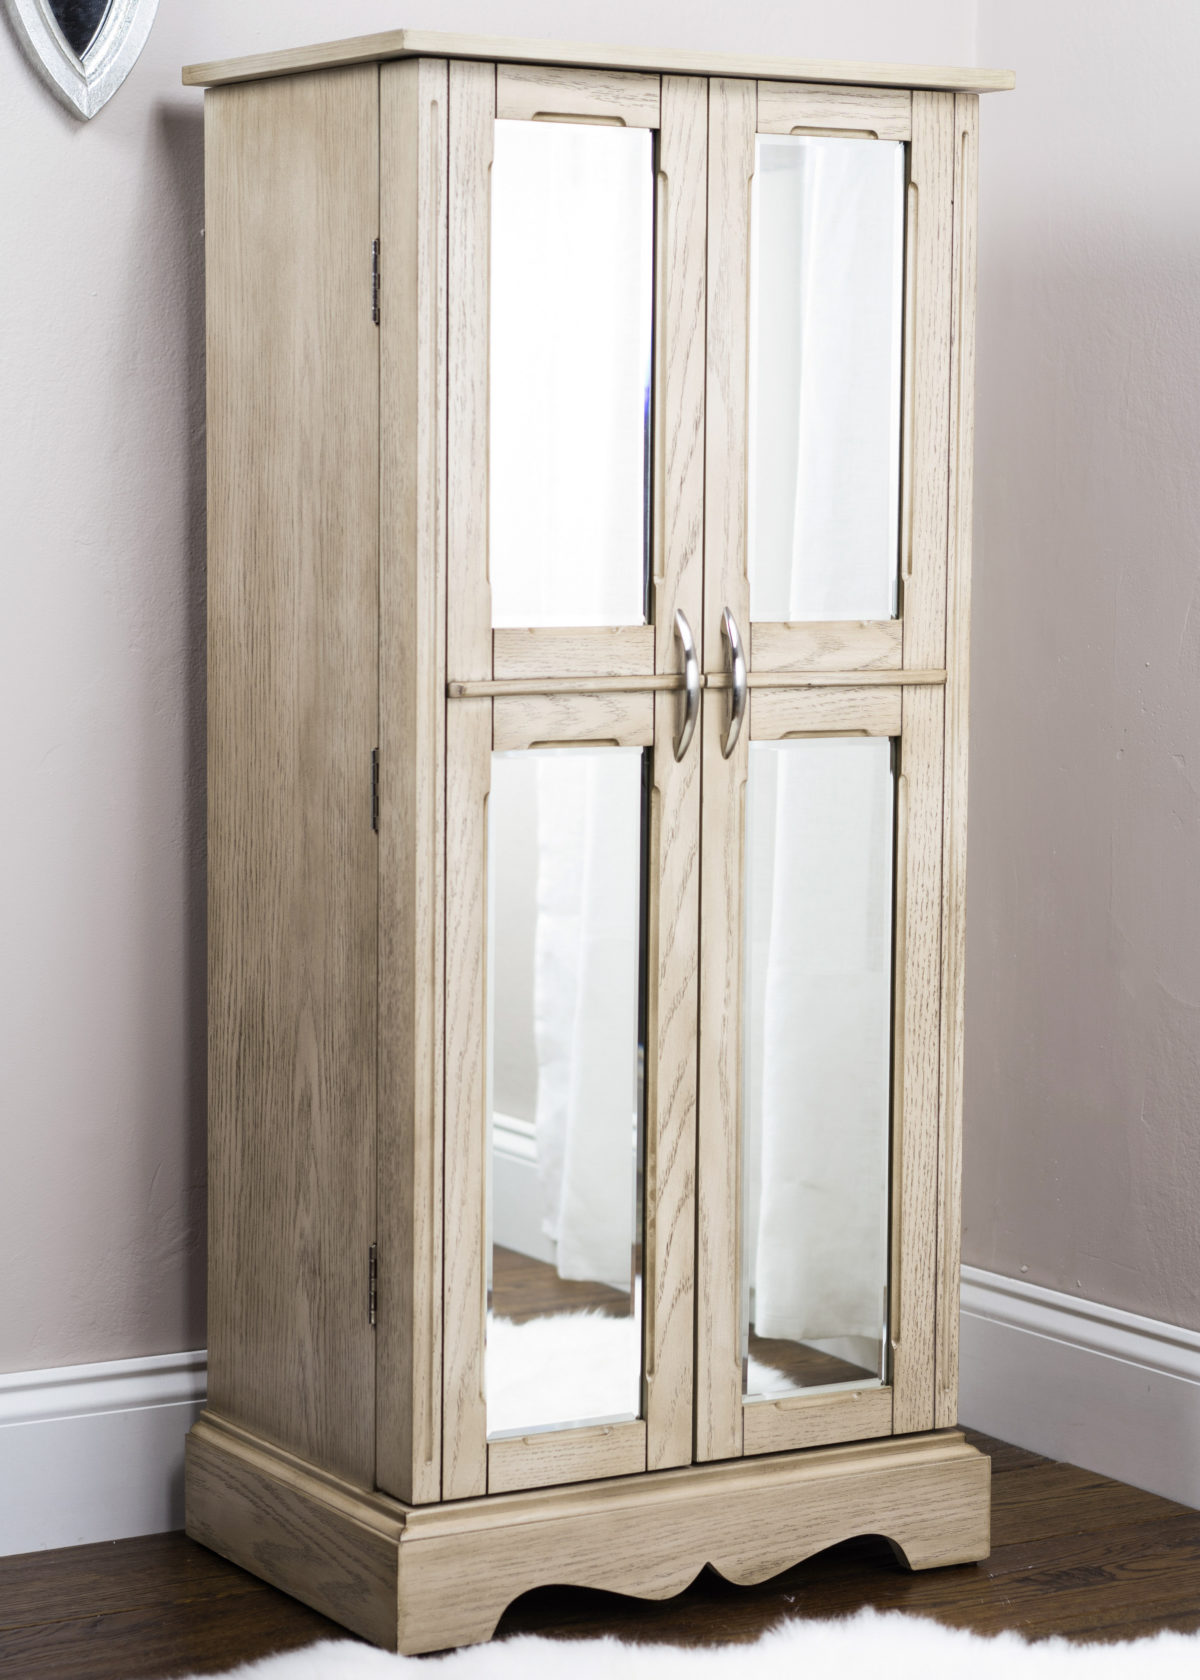 Chelsea Jewelry Armoire   Taupe Mist   Hives and Honey Chelsea Jewelry Armoire   Taupe Mist